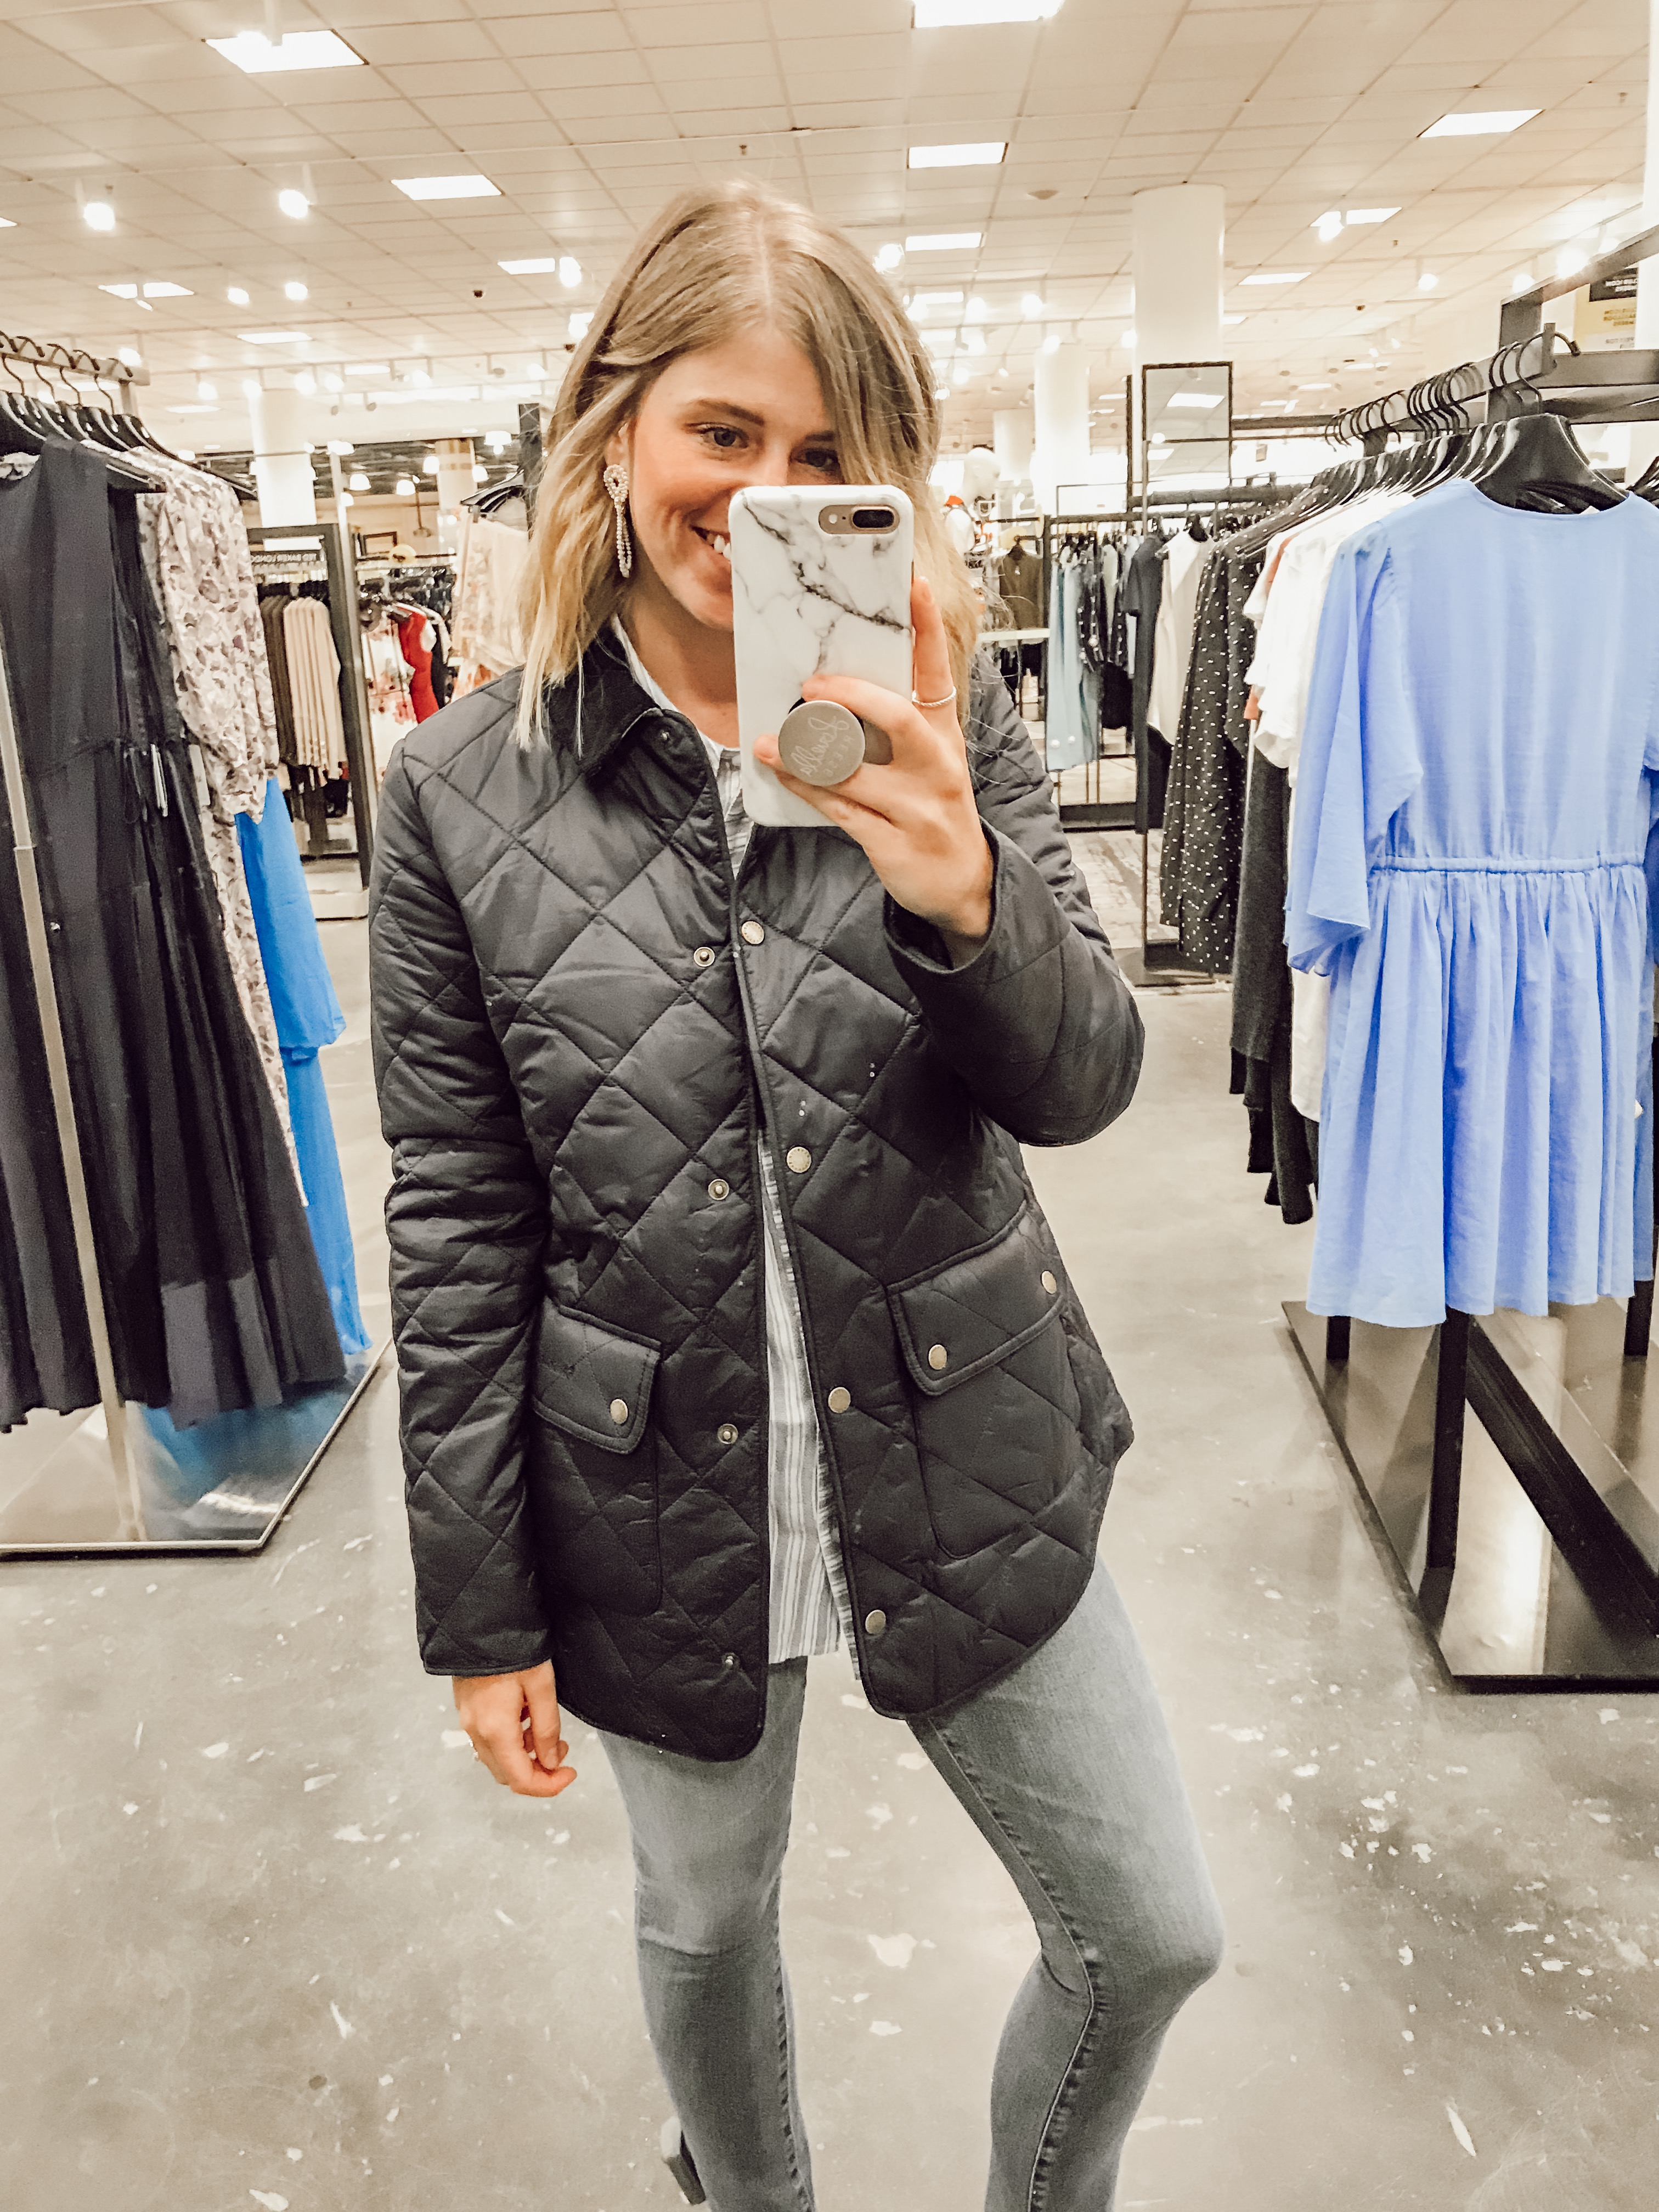 Barbour Oakland Quilted Jacket | 2019 Nordstrom Anniversary Fitting Room Session featured on Louella Reese Life & Style Blog